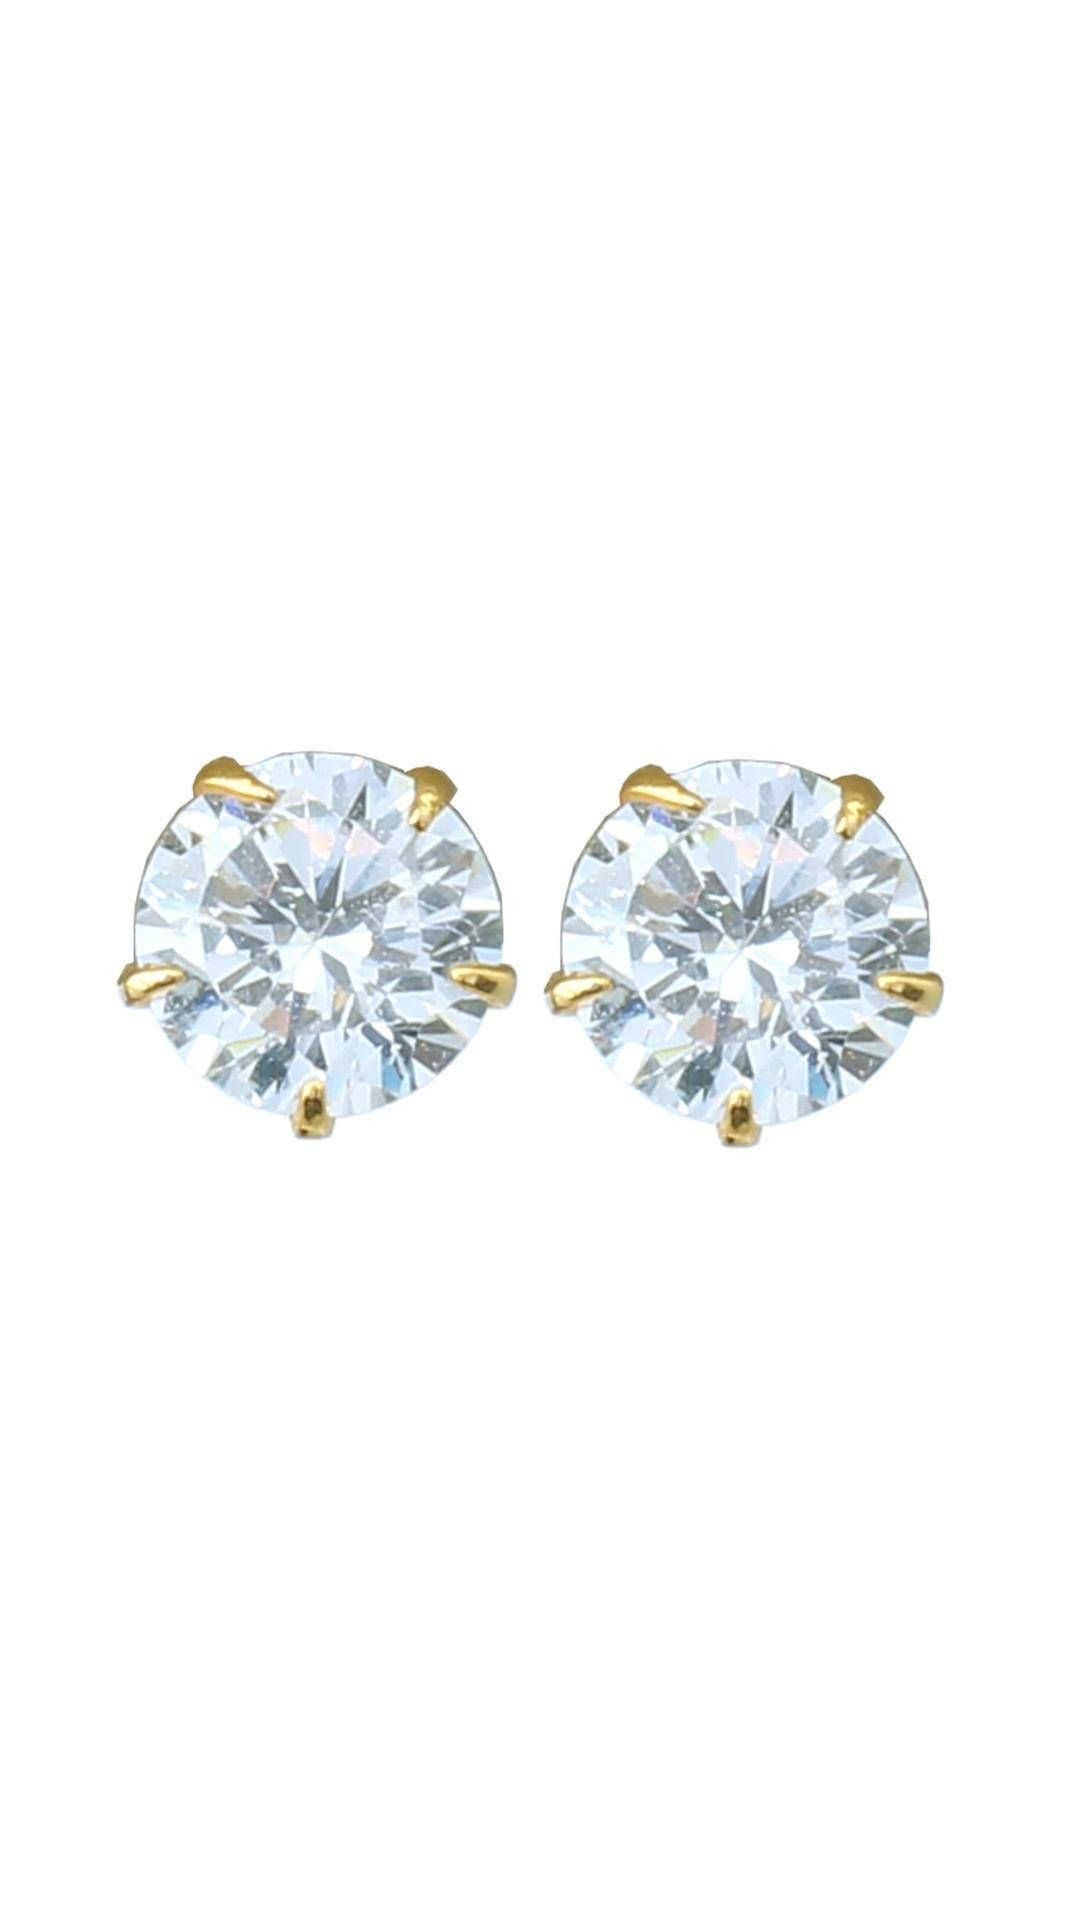 ctw earrings diamonds earring ct carat solid p with gold daily diamond leverback htm wear